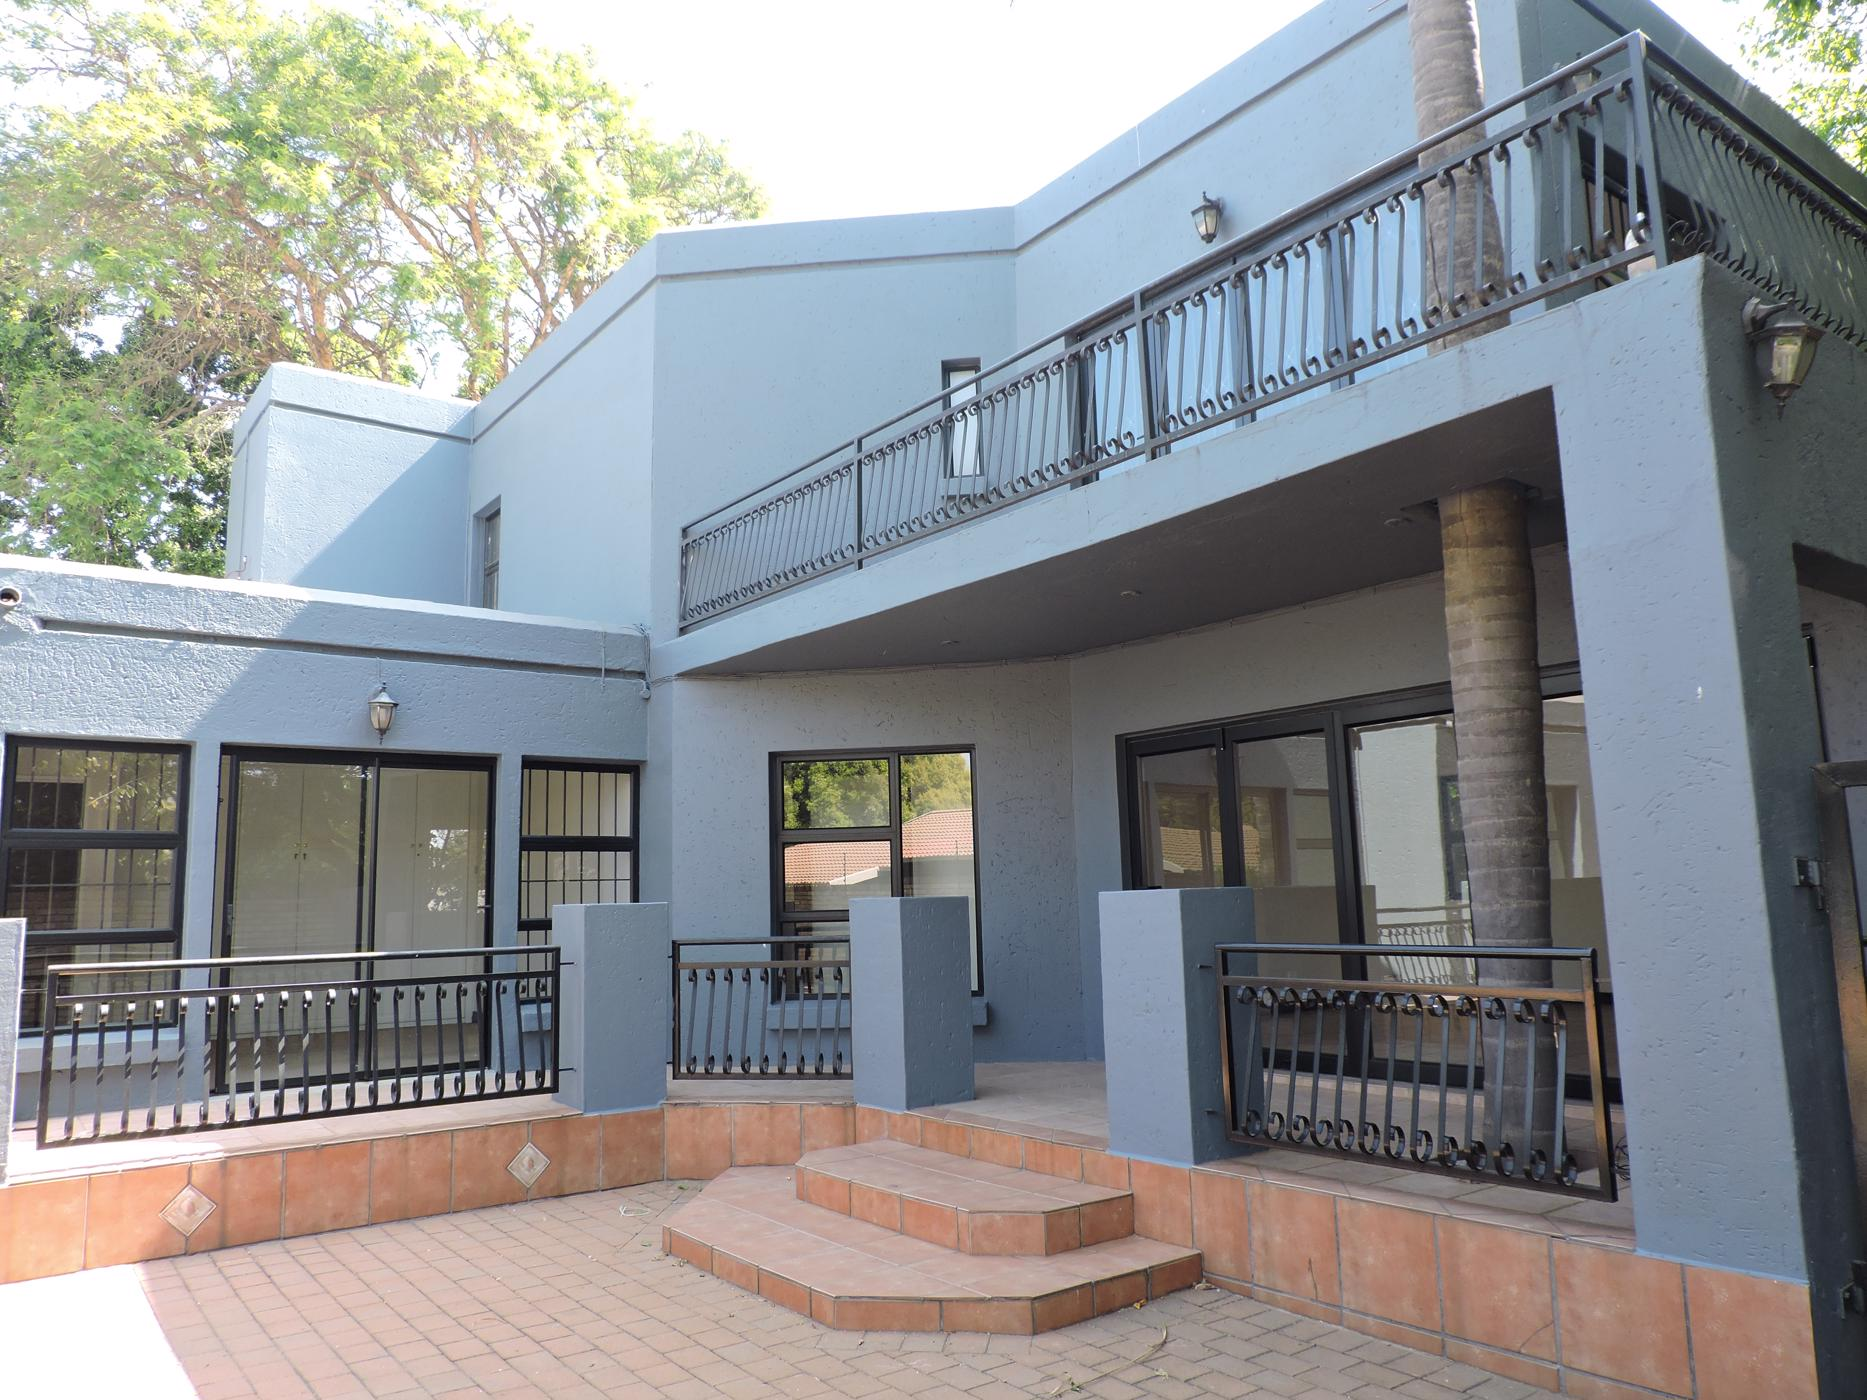 https://listing.pamgolding.co.za/images/properties/201910/1046160/H/1046160_H_45.jpg